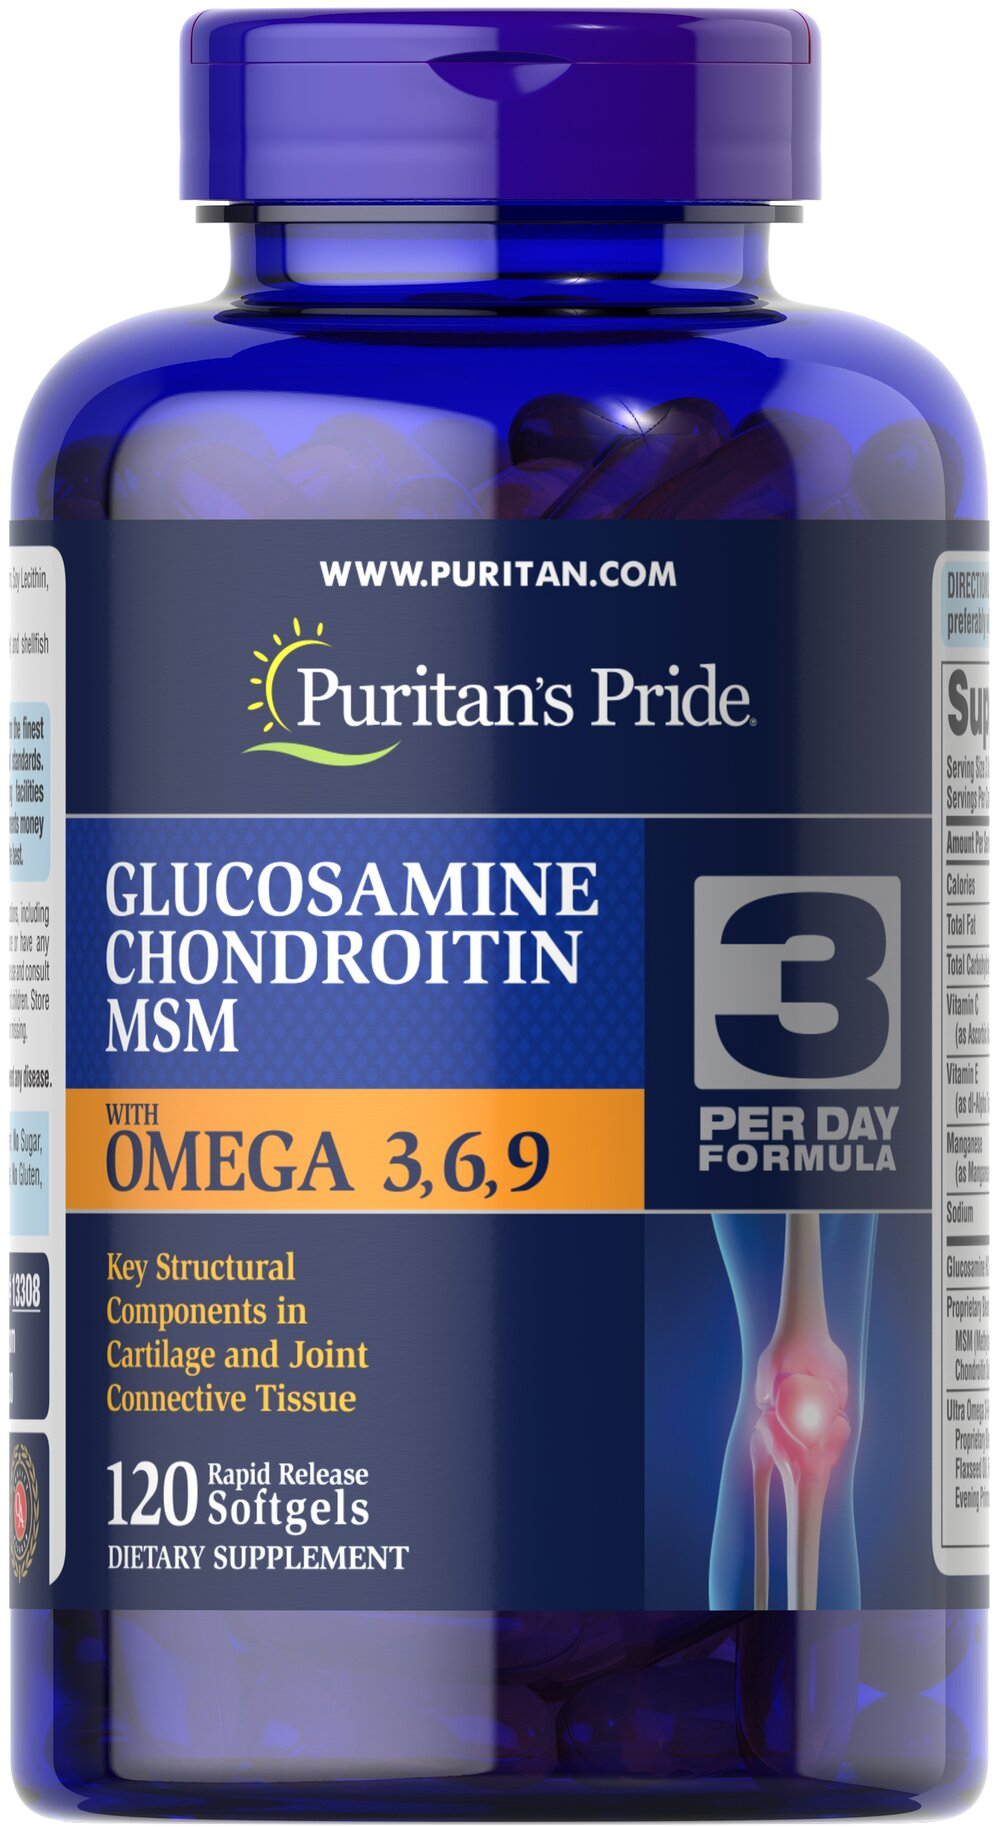 Glucosamine, Chondroitin & MSM with Omega 3, 6, 9 <p>The active ingredients in Joint Soother® are popular for their joint supporting abilities.** This formulation also includes <strong>Omega-3, -6, and -9 fatty acids</strong> from Primrose, Flax and Fish body oils. Support your mobility and flexibility with this formula.</p> 120 Softgels